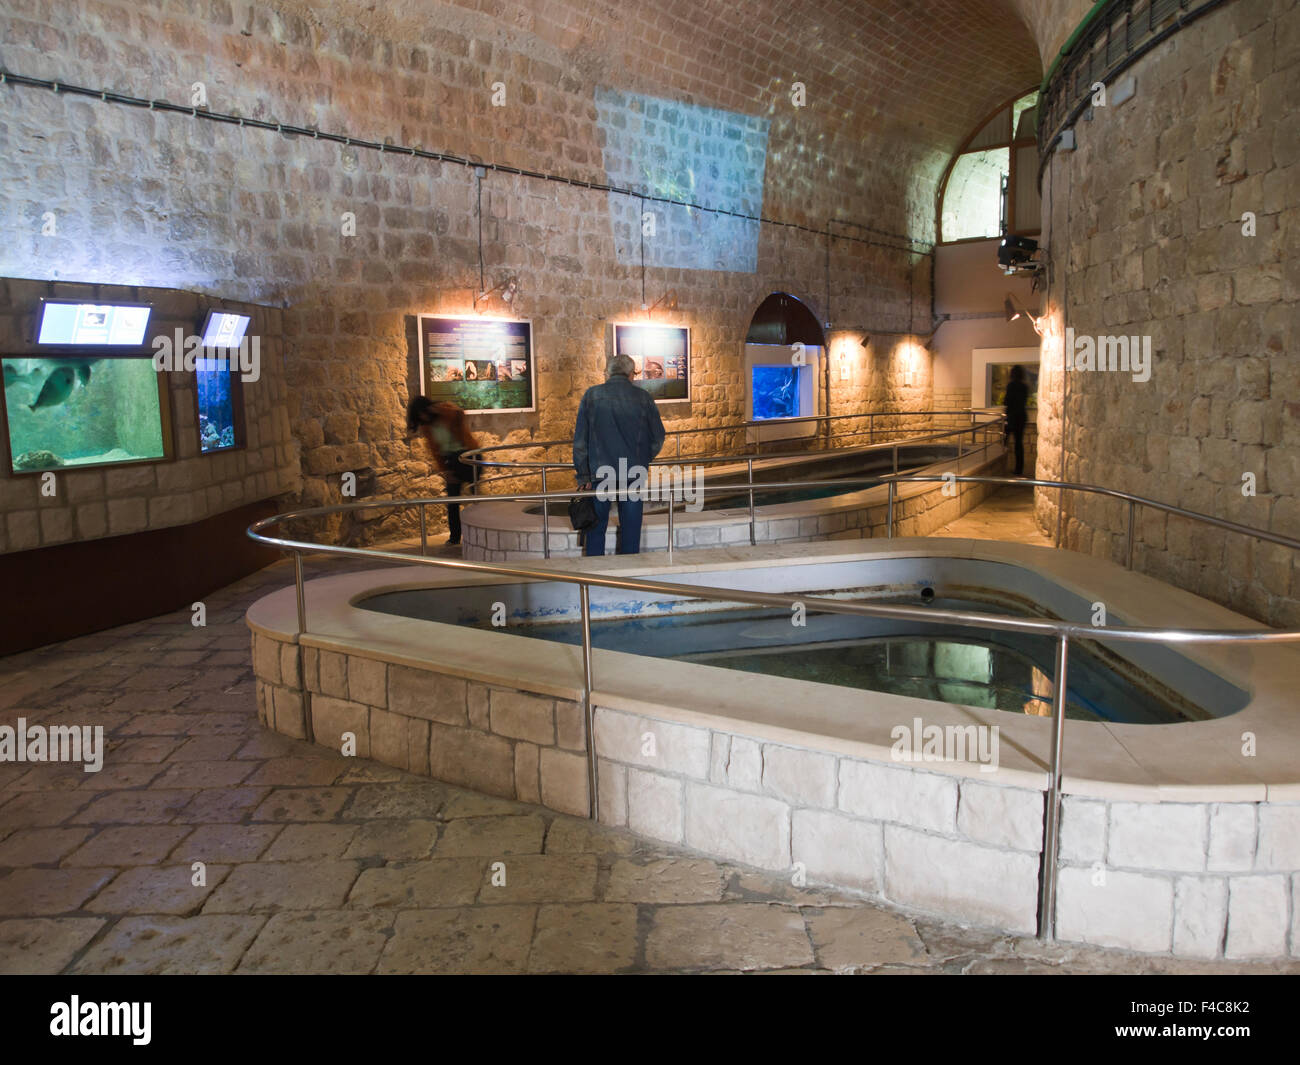 In addition to showing  Mediterranean sea life, the Aquarium in Dubrovnik Croatia has an imposing home in the old - Stock Image